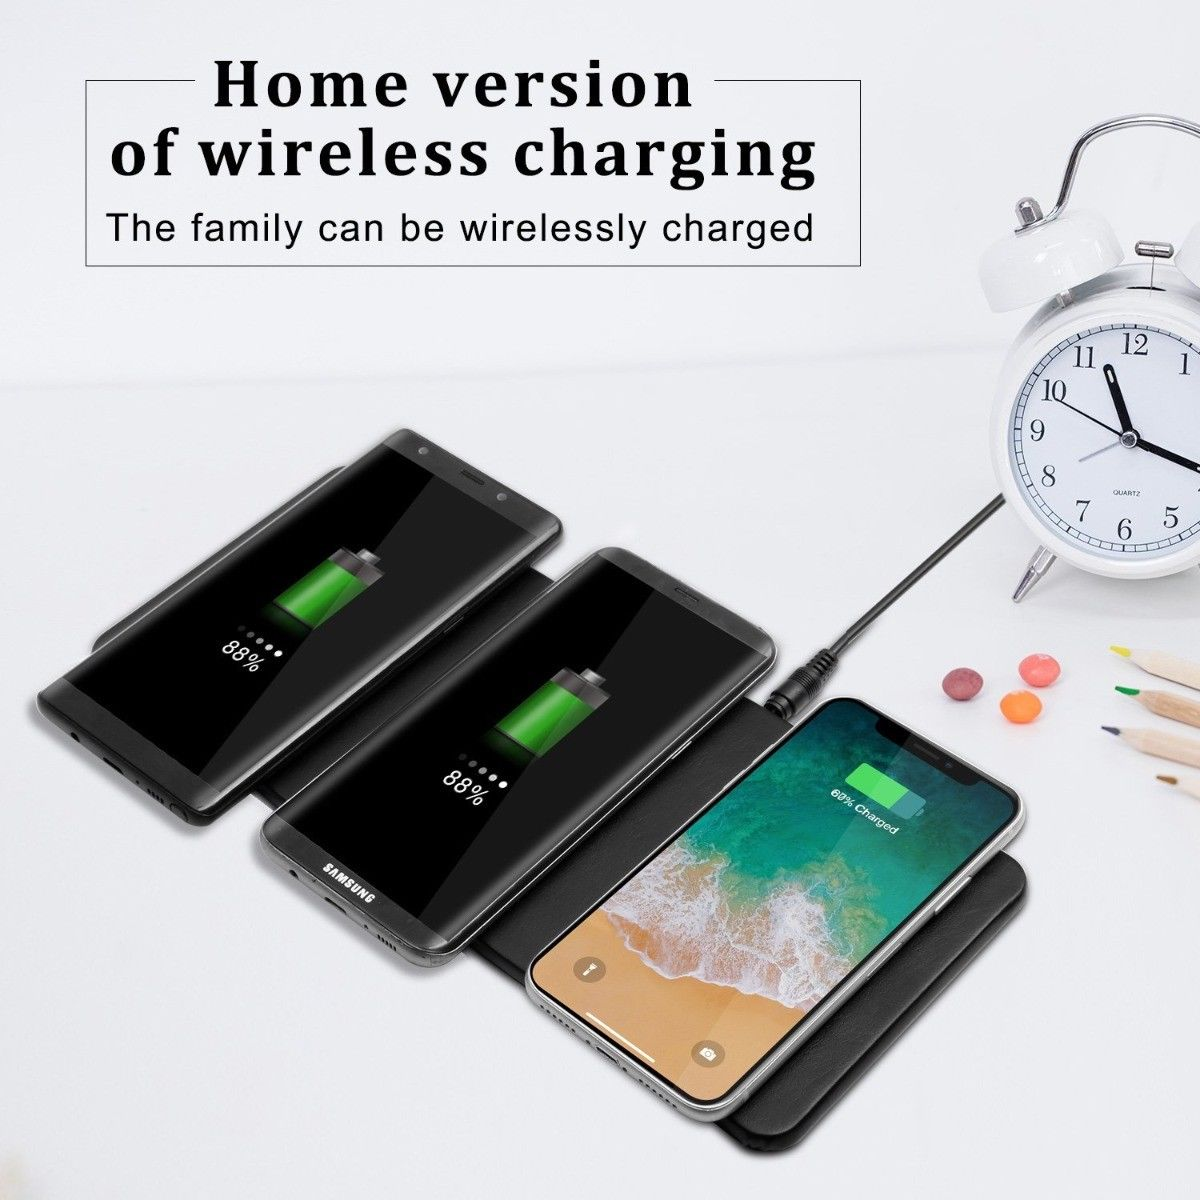 JE 3 Devices Multi Wireless Charge